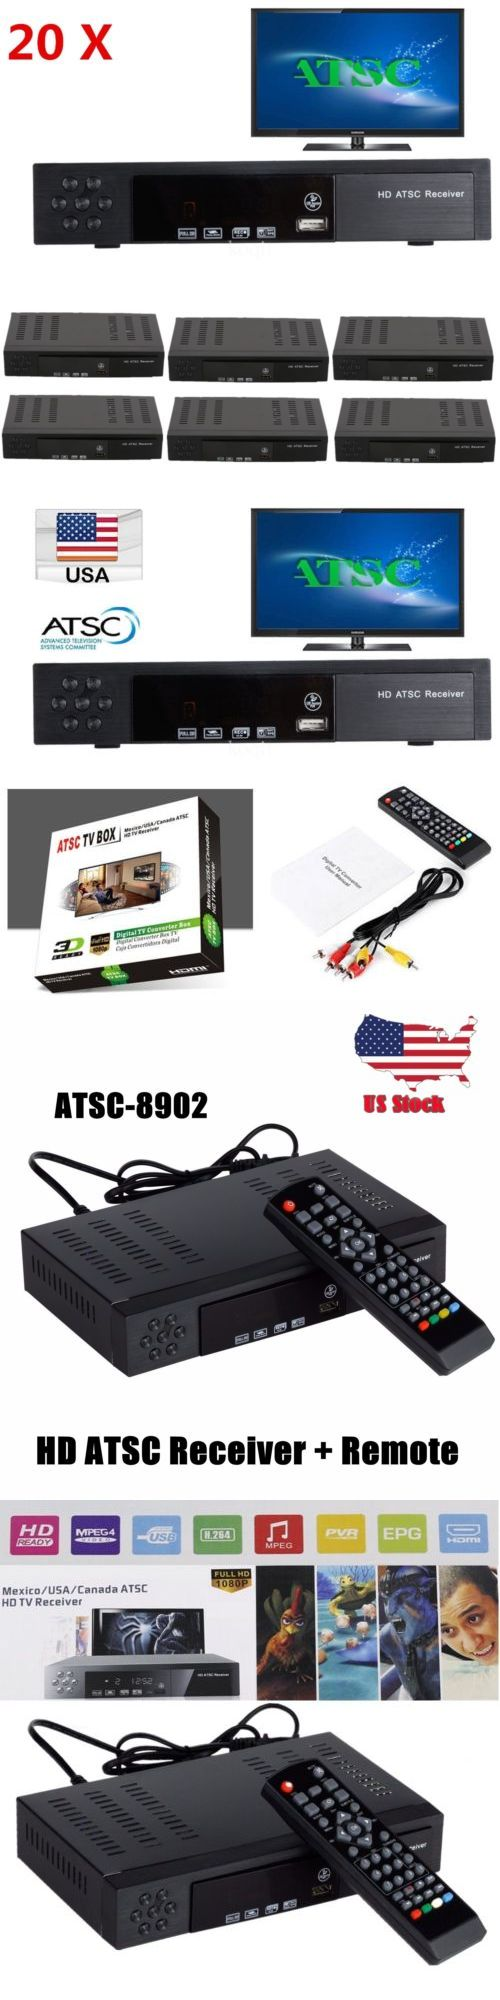 Cable TV Boxes: 20X Atsc Digital Hd 1080P Remote Usb Tv Box Converter Decoder Tuner Receiver Ek -> BUY IT NOW ONLY: $375.97 on eBay!